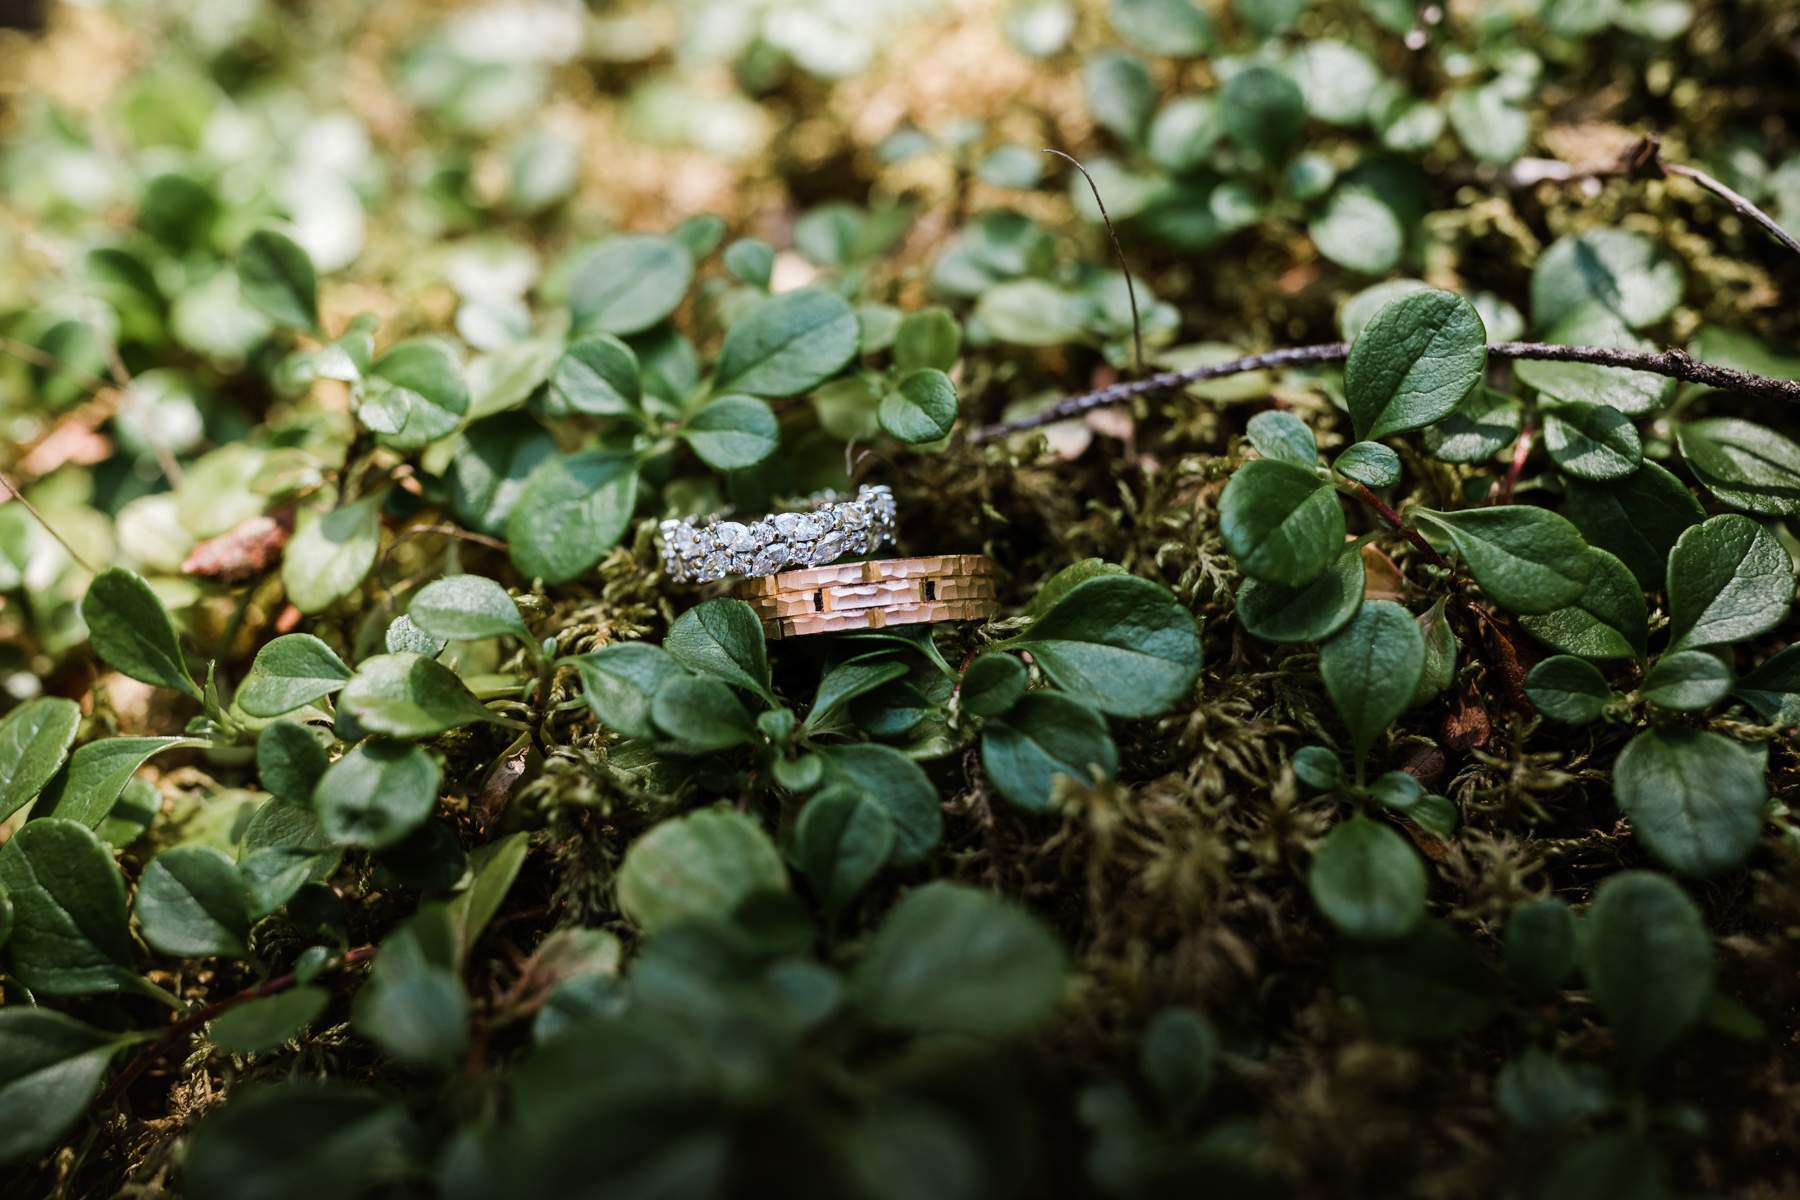 Detail shots of the wedding rings which are lying among cloverleafs